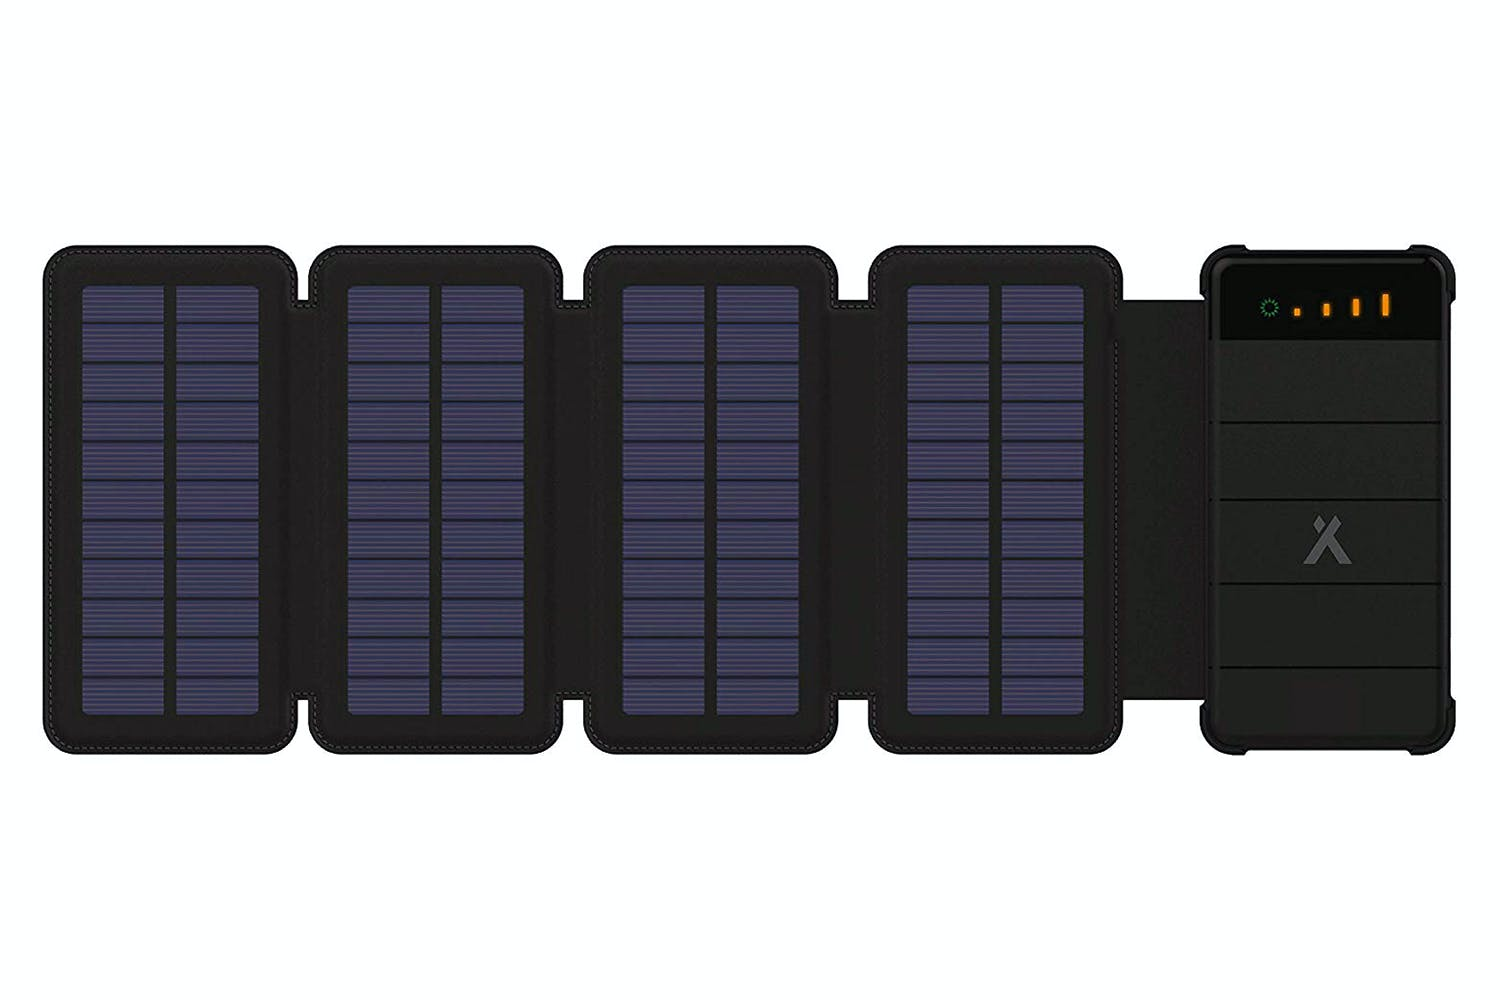 Bear Grylls 8000mAh Solar Power Bank | Black